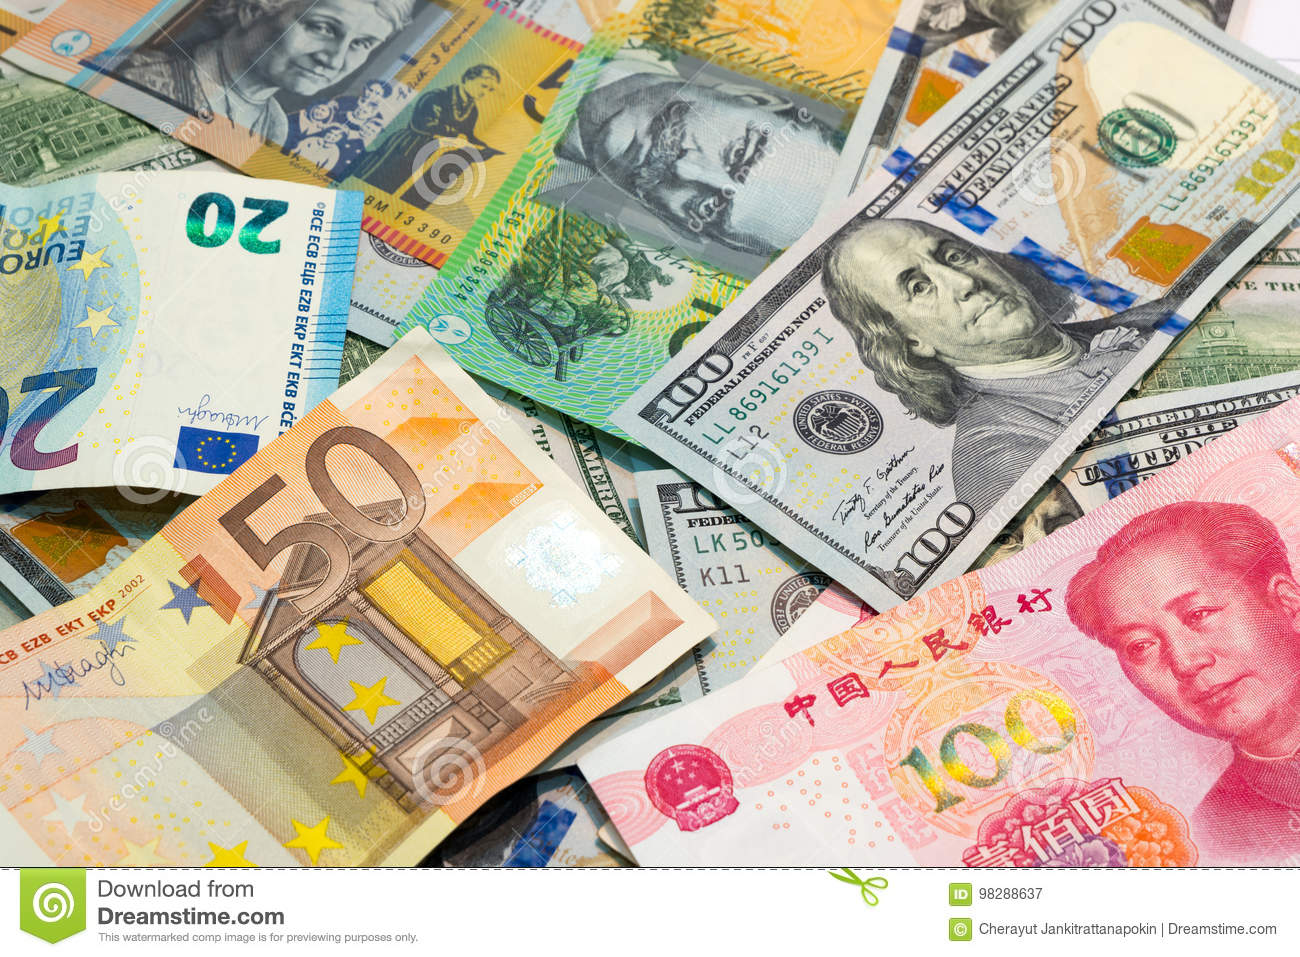 World's Major Currencies As Money Background. Stock Image - Image of foreign, colorful: 98288637